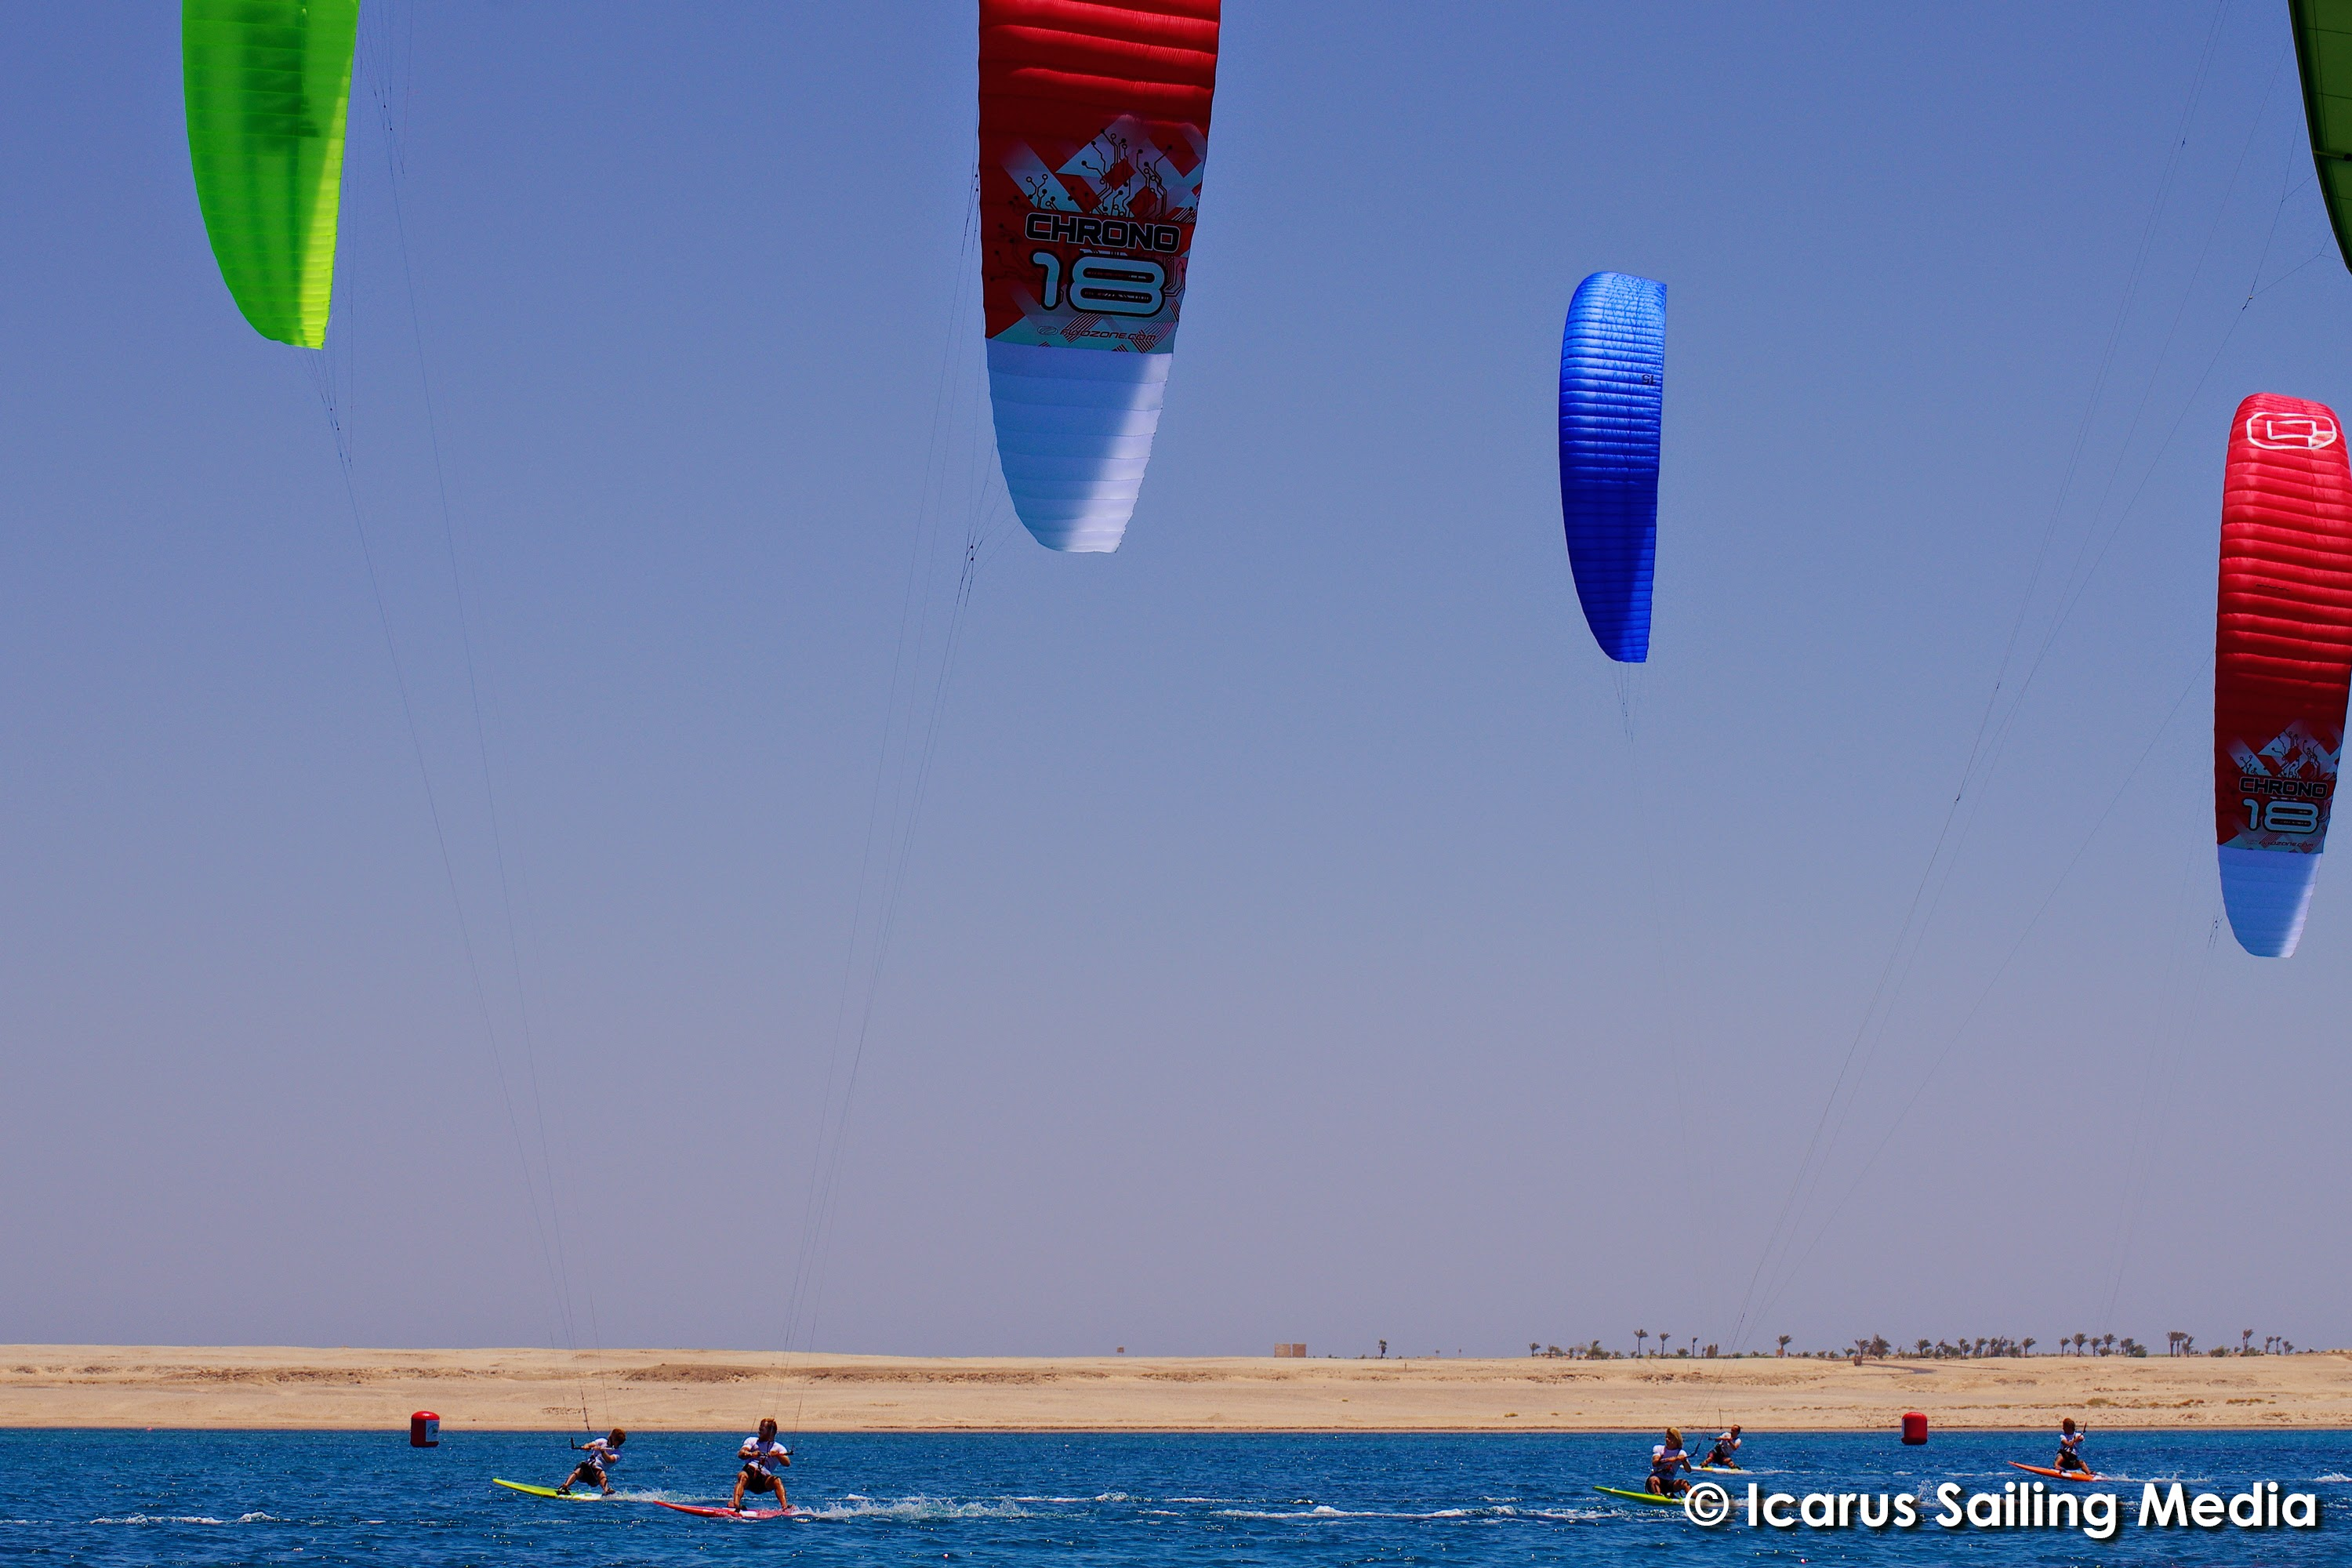 Foil Kites dominating in light wind